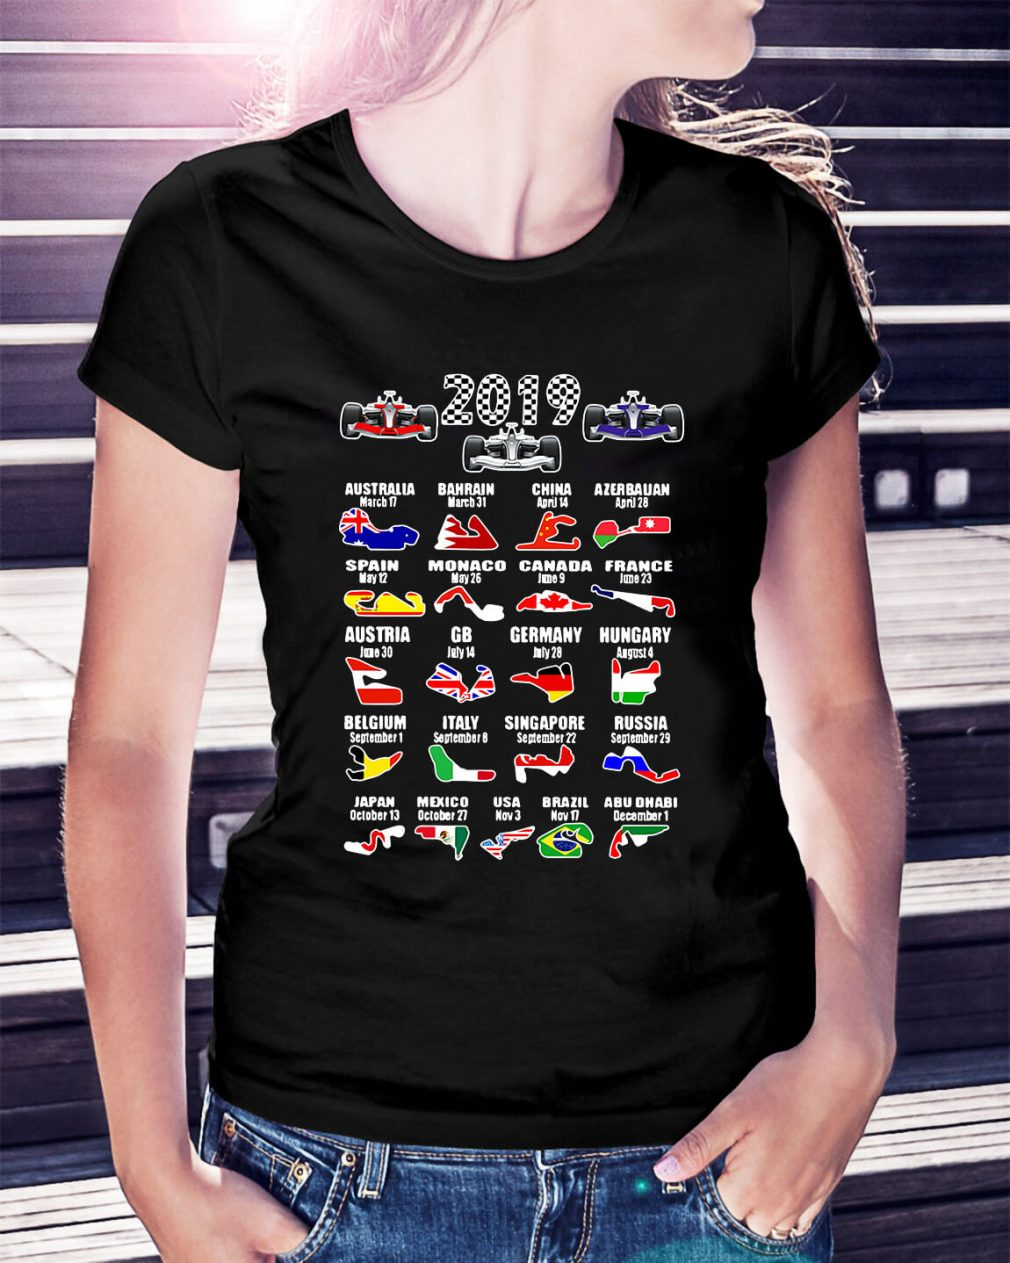 2019 racing calendar Australia Bahrain China Ladies Tee